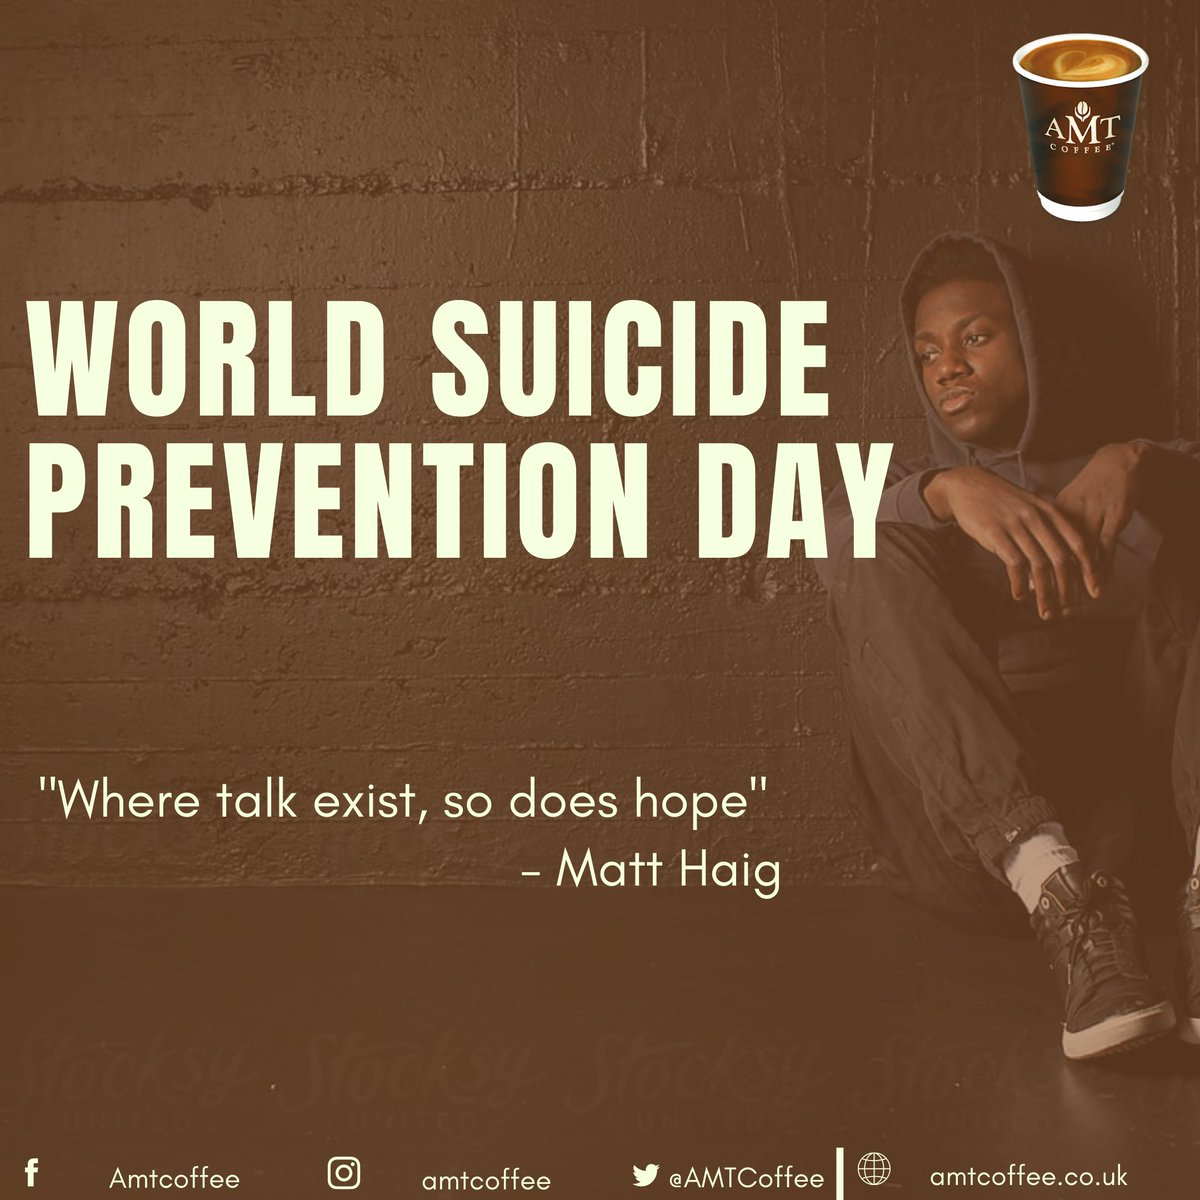 When you feel down, talk to someone. Never ever give up #worldsuicidepreventionday #coffee #coffeetime #coffeelover #cafe #coffeeshop #AMTcoffee #coffeeaddict #espresso #food #love #barista #kopi #coffeelovers